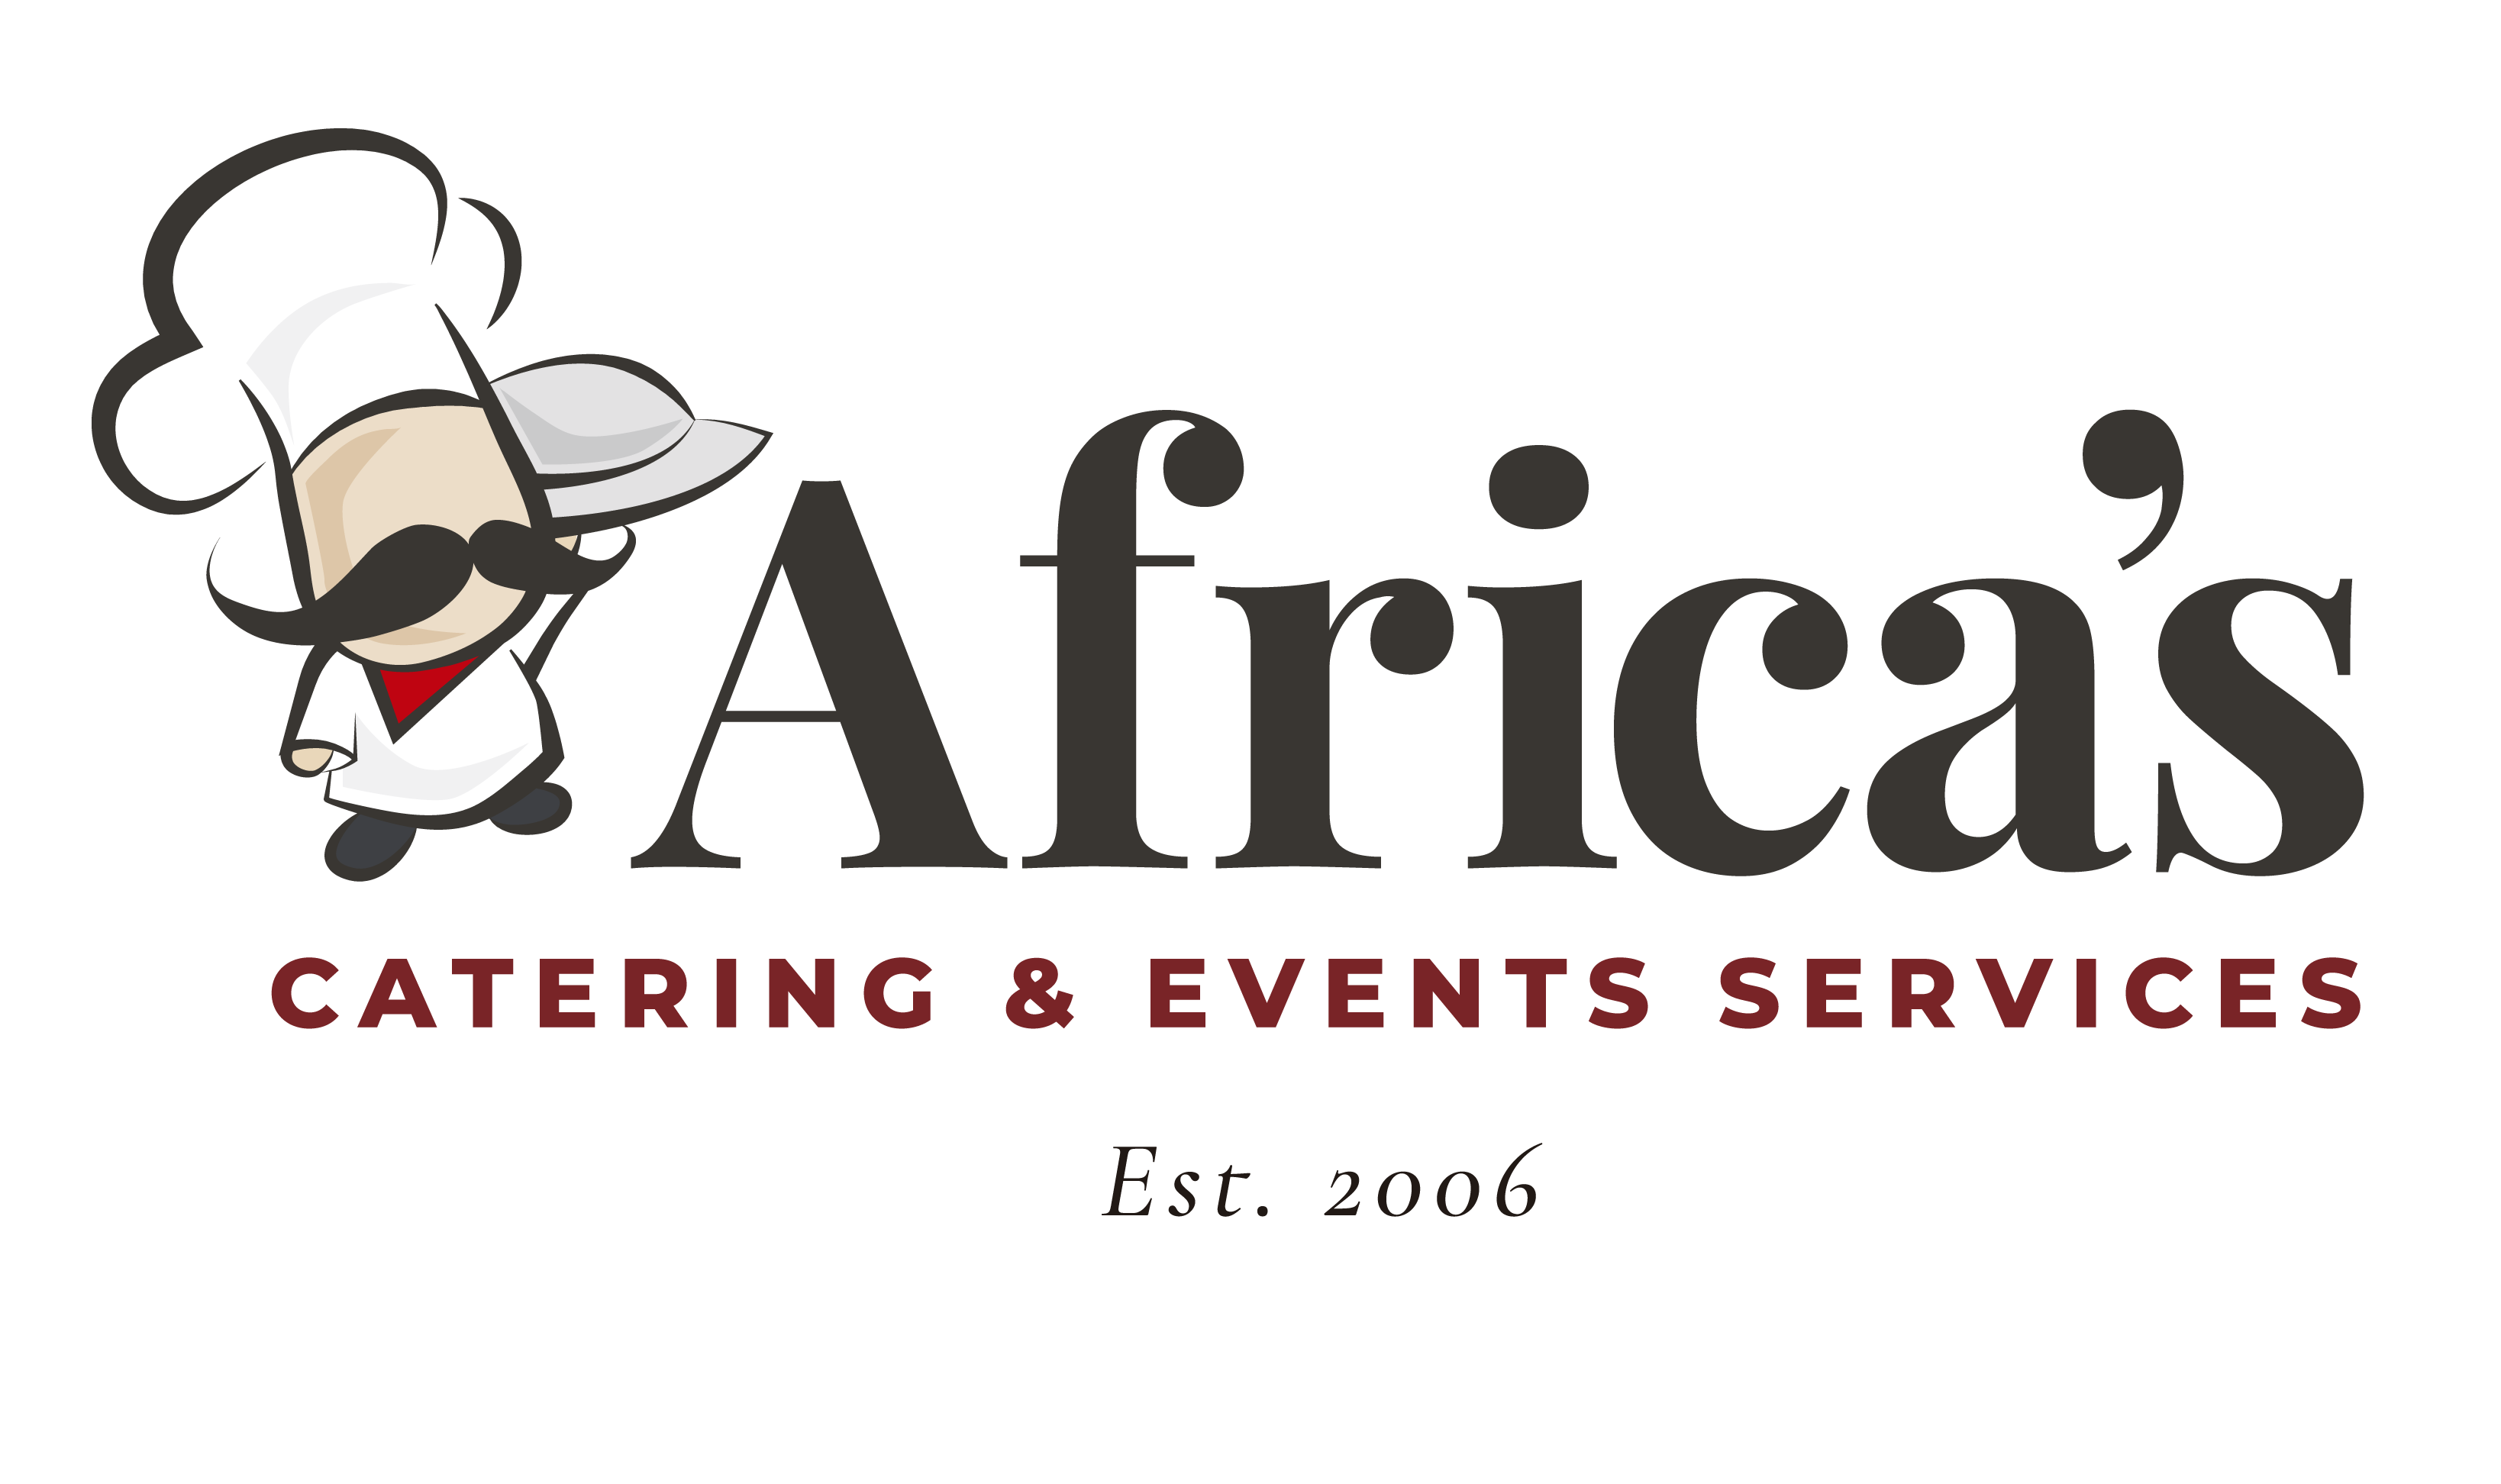 Africa's Catering & Events Services